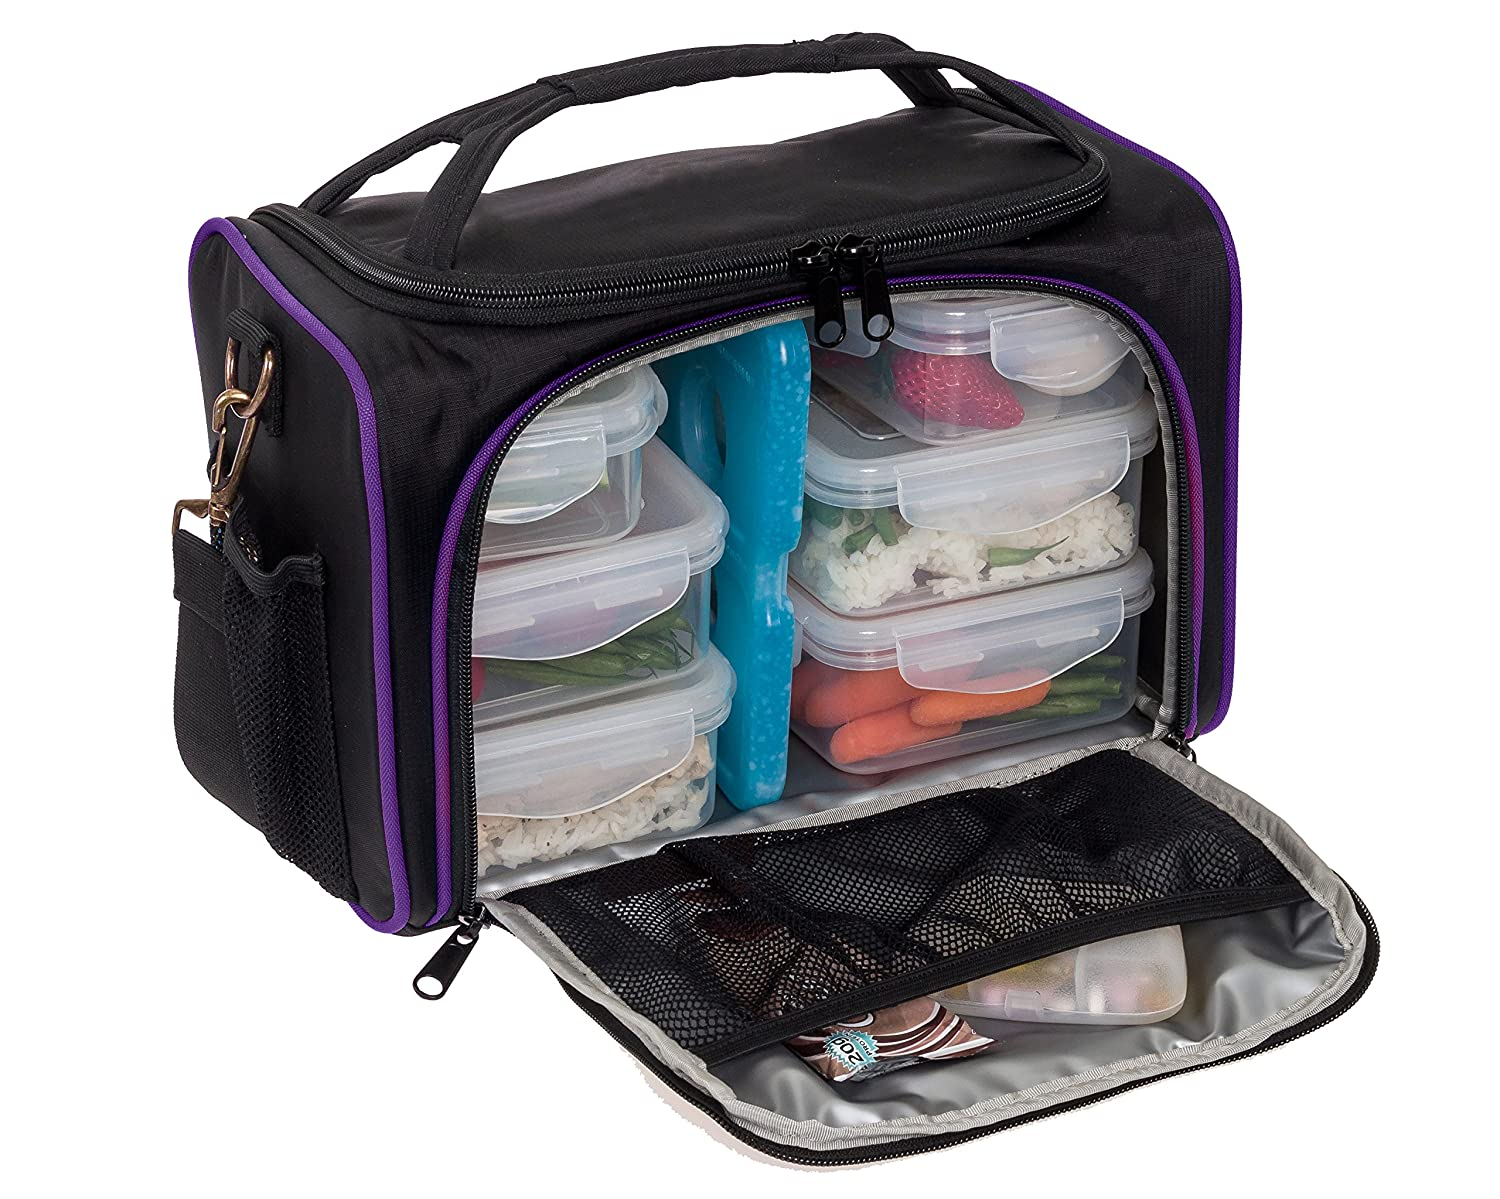 Meal Prep Bag by LISH - Insulated Lunch Box w/ 6 Portion Control Containers, Black & Purple